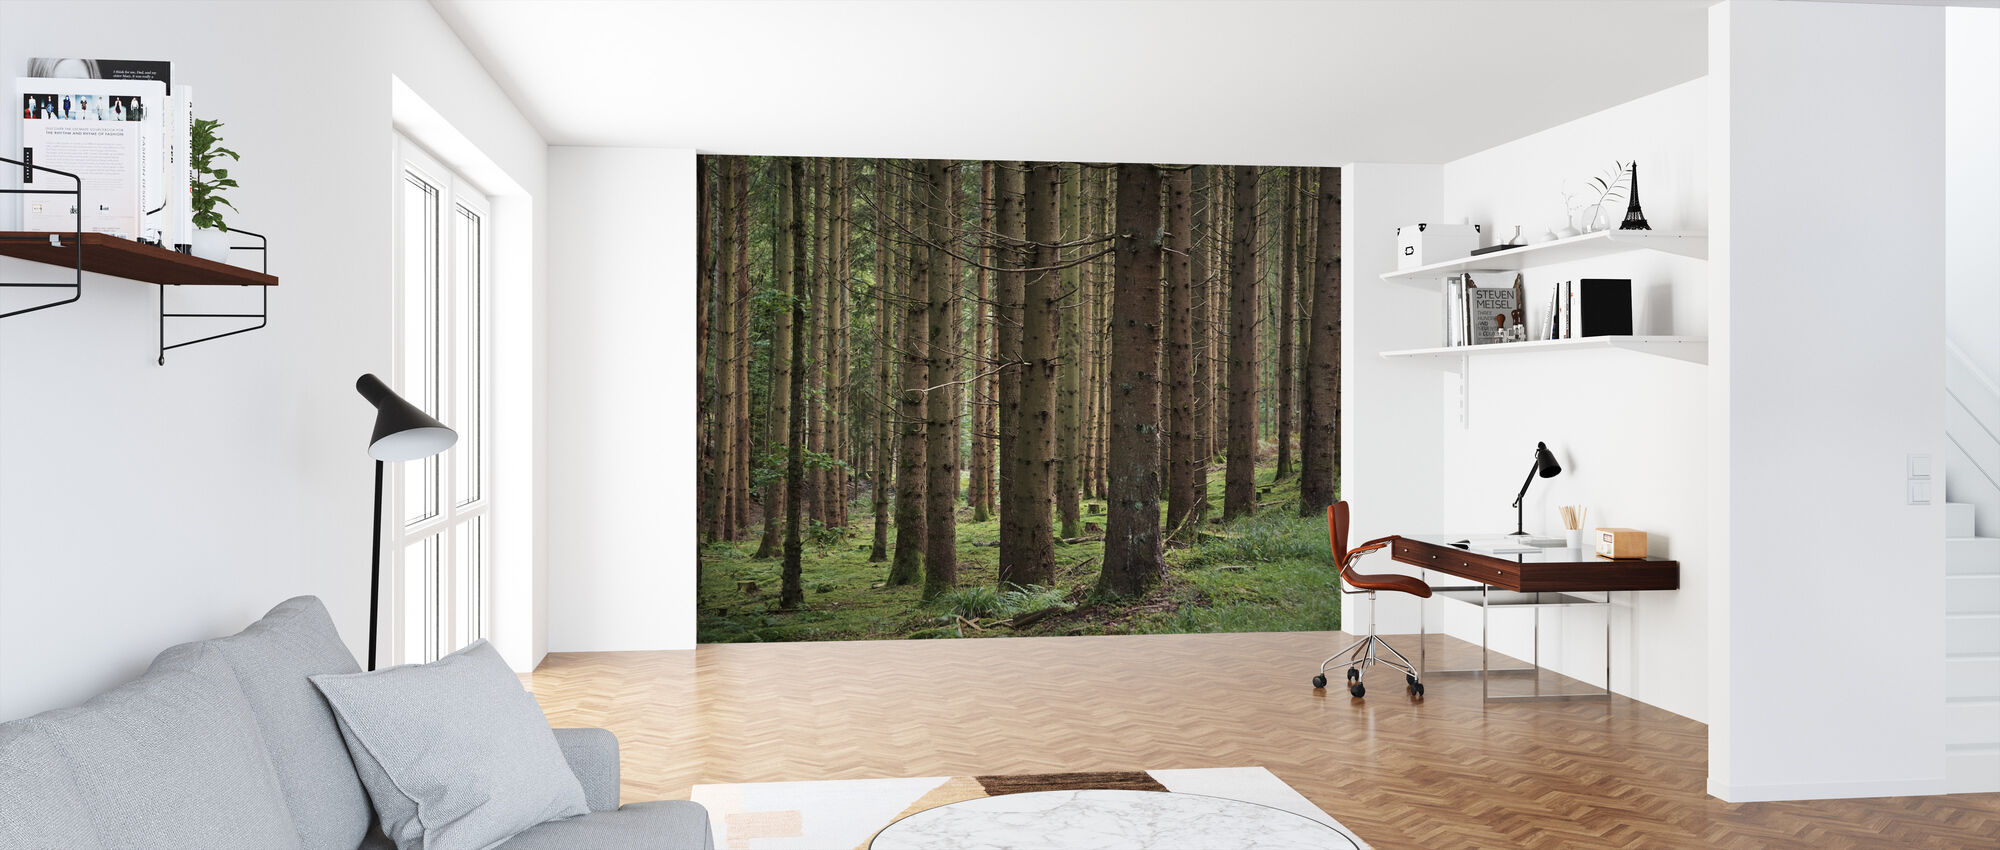 Coniferous Forest - Wallpaper - Office